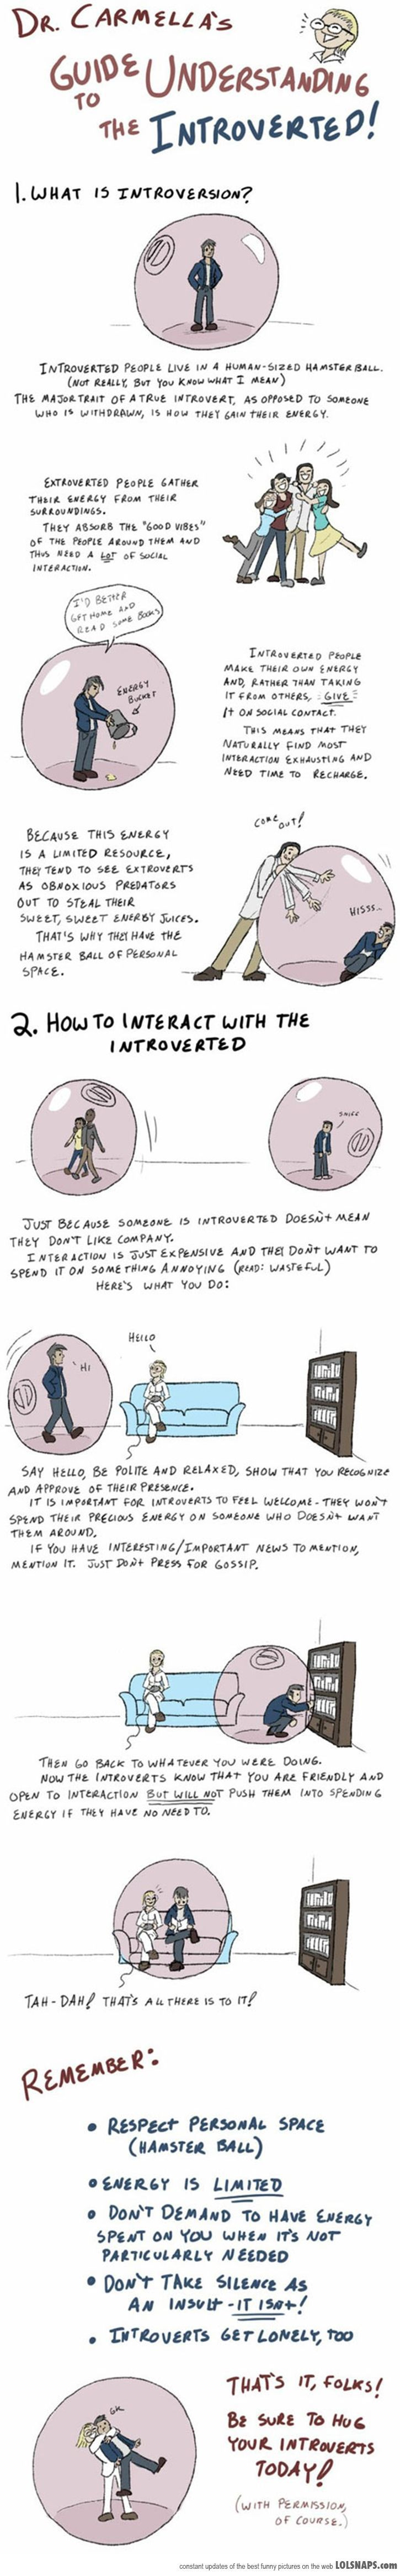 Guide To Understanding The Introverted...